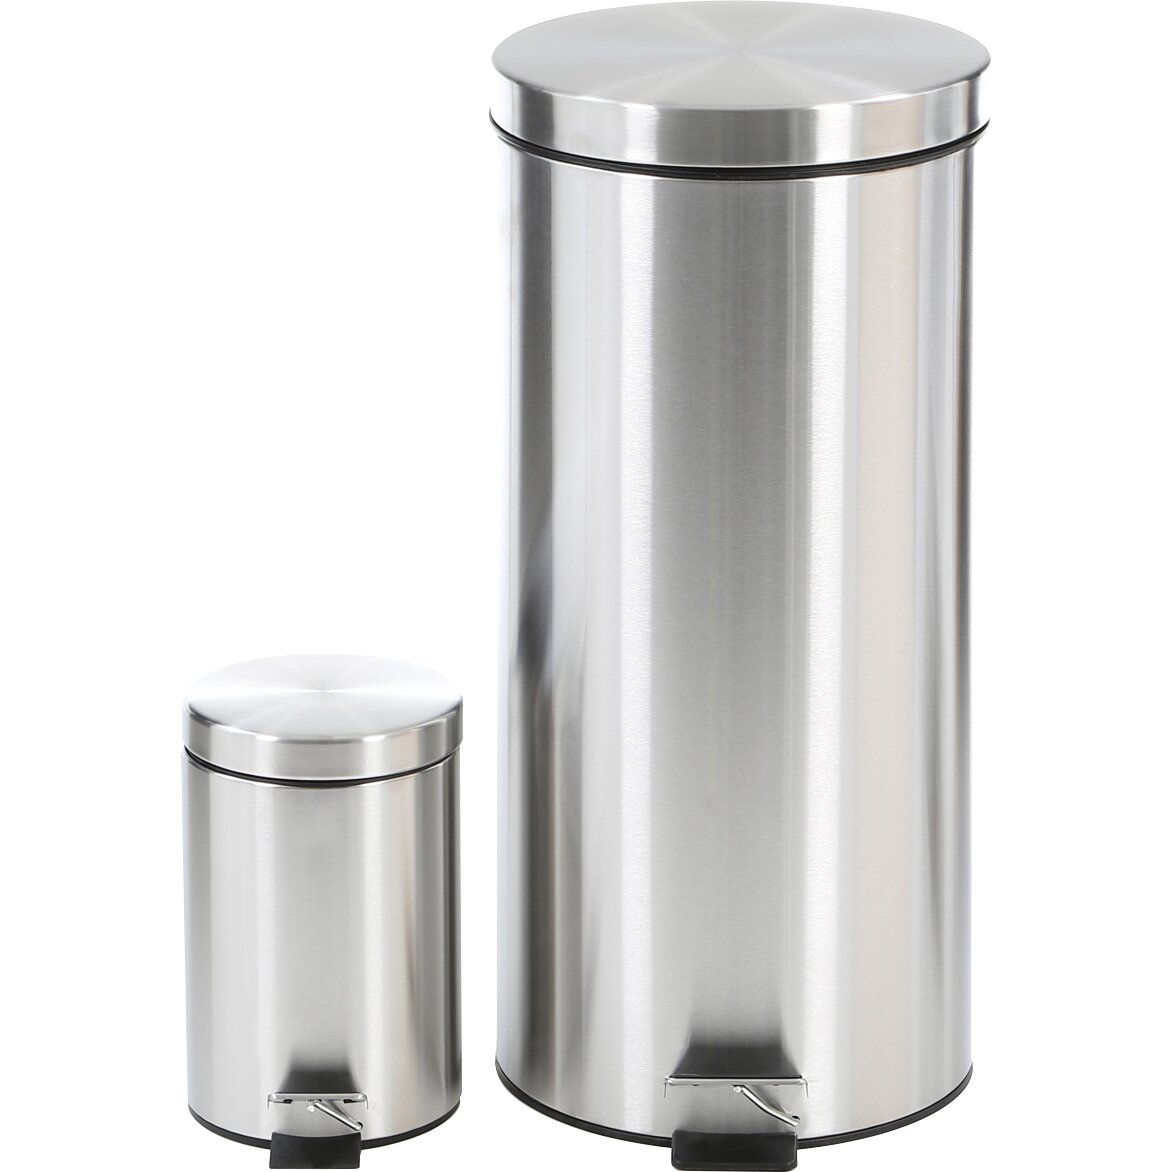 Honey Can Do Honey-Can-Do 2 Piece Stainless Steel Step Trash Can Set